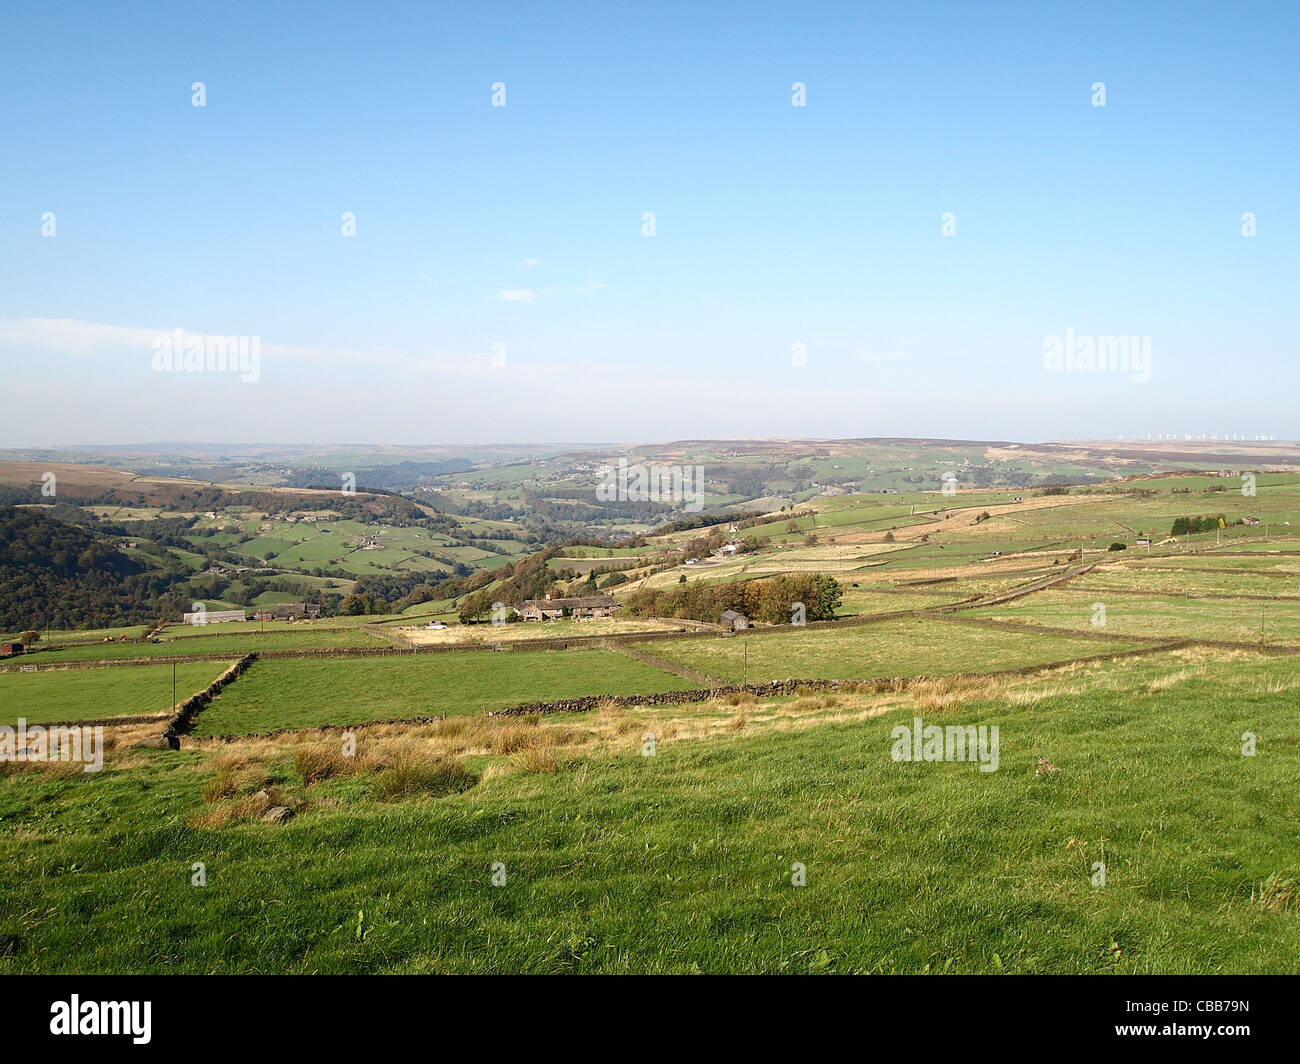 View looking north-west over Cragg Vale valley and the moors beyond, Calderdale, West Yorkshire - Stock Image